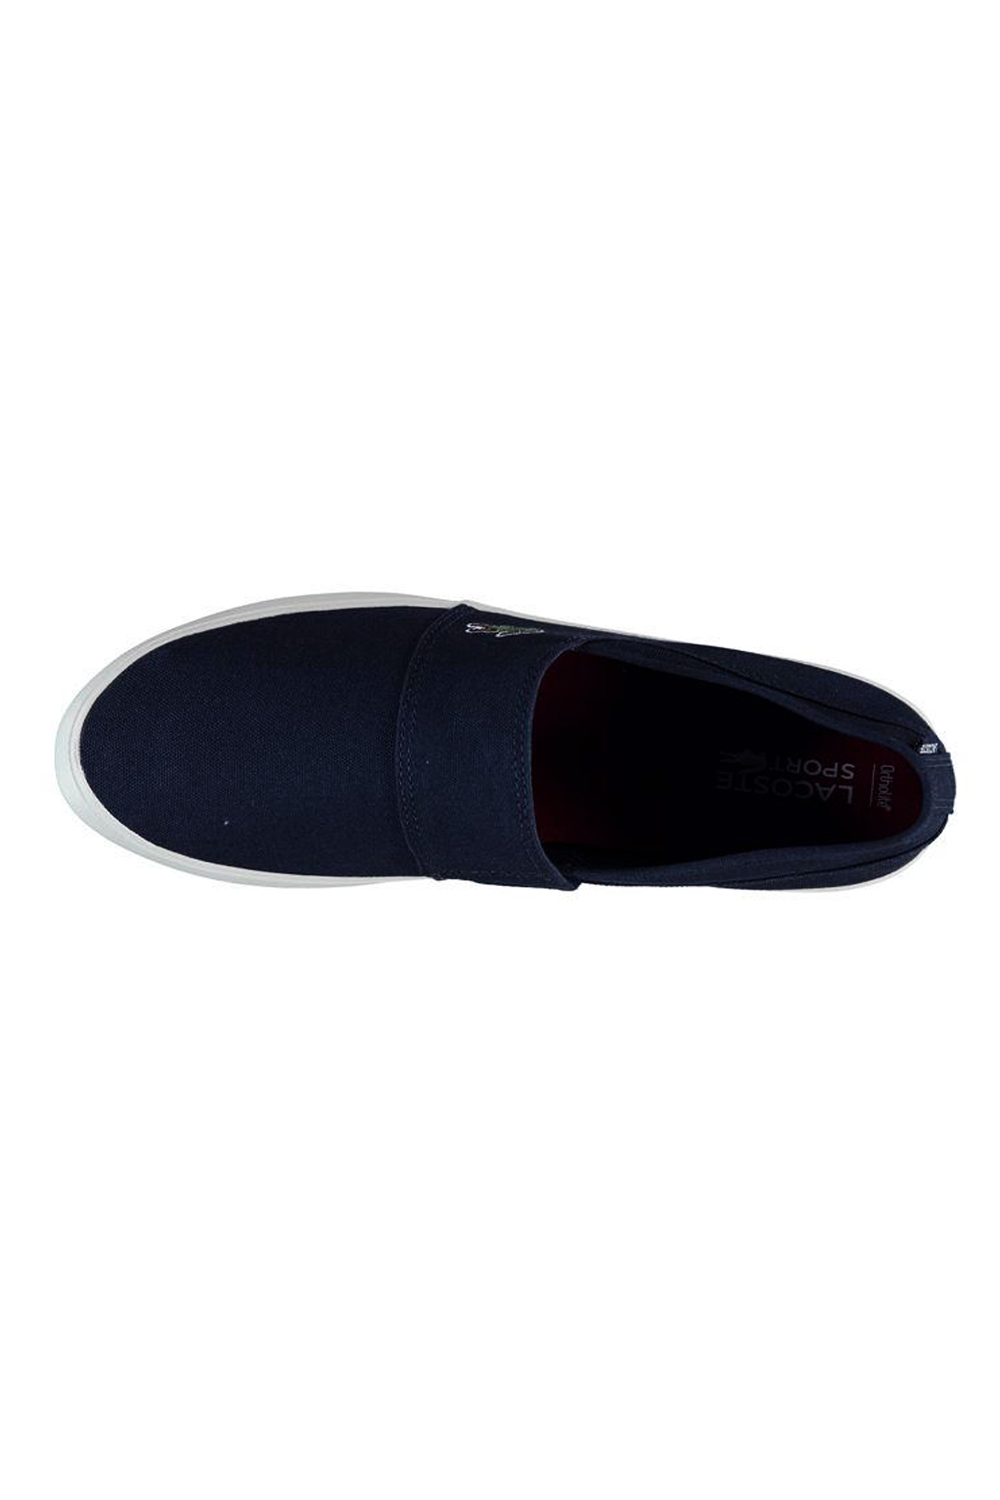 miniature 7 - Homme-Lacoste-Marice-Lacet-Toile-Chaussures-Decontractees-Confortable-Tennis-Escarpins